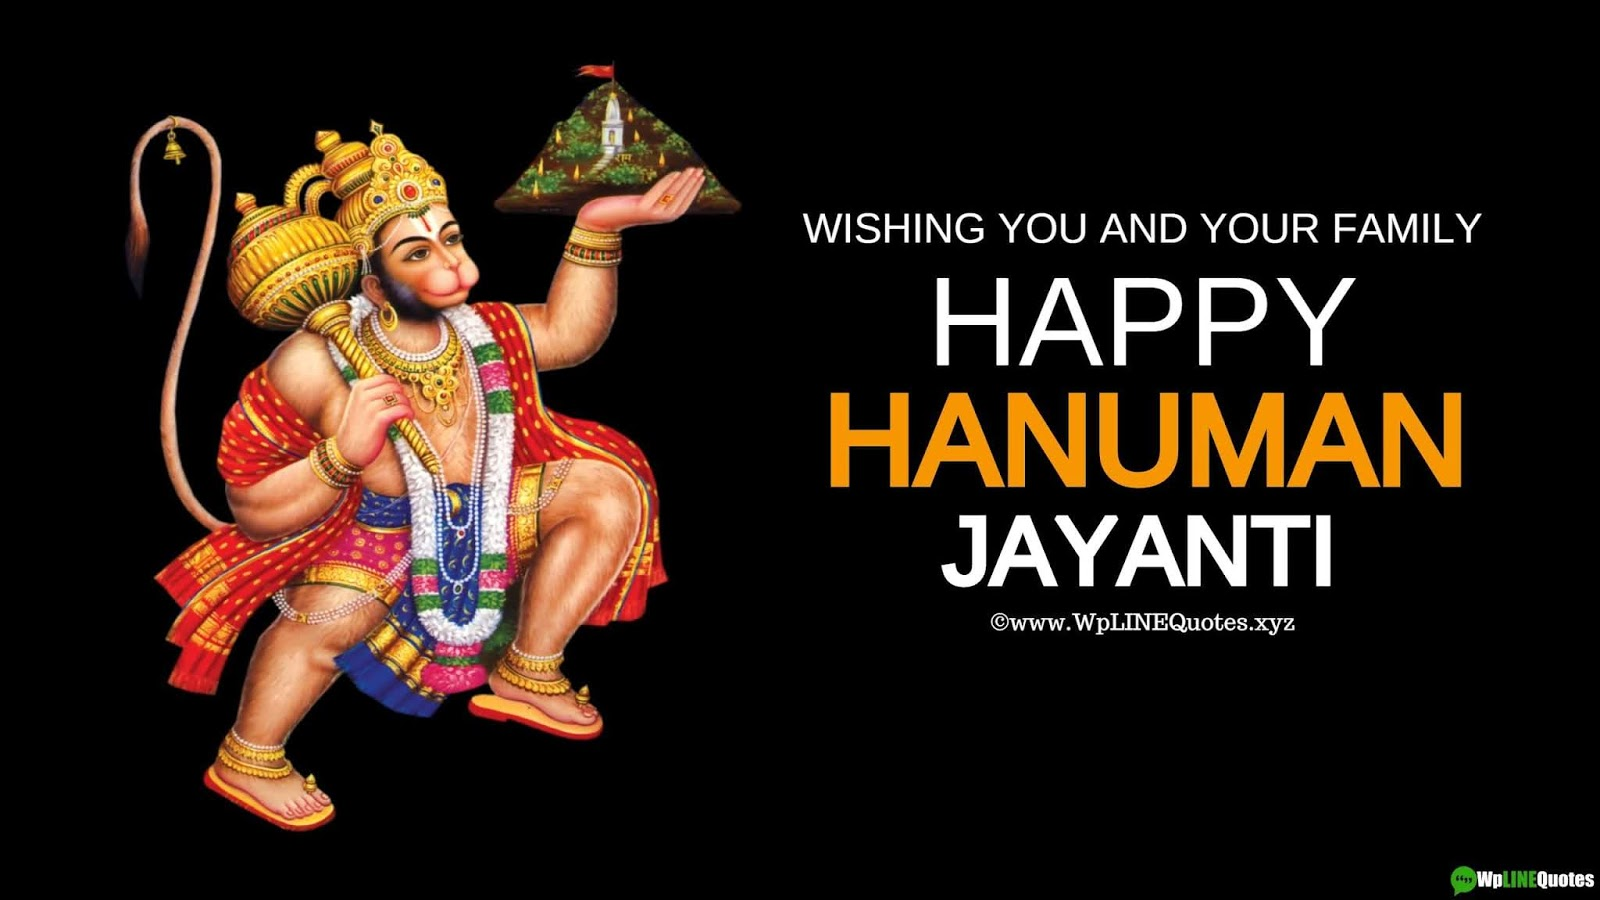 Hanuman Jayant Wishes, Quotes, Messages, SMS, Greetings, History, Images, Poster, Wallpaper For Whatsapp Status & Facebook